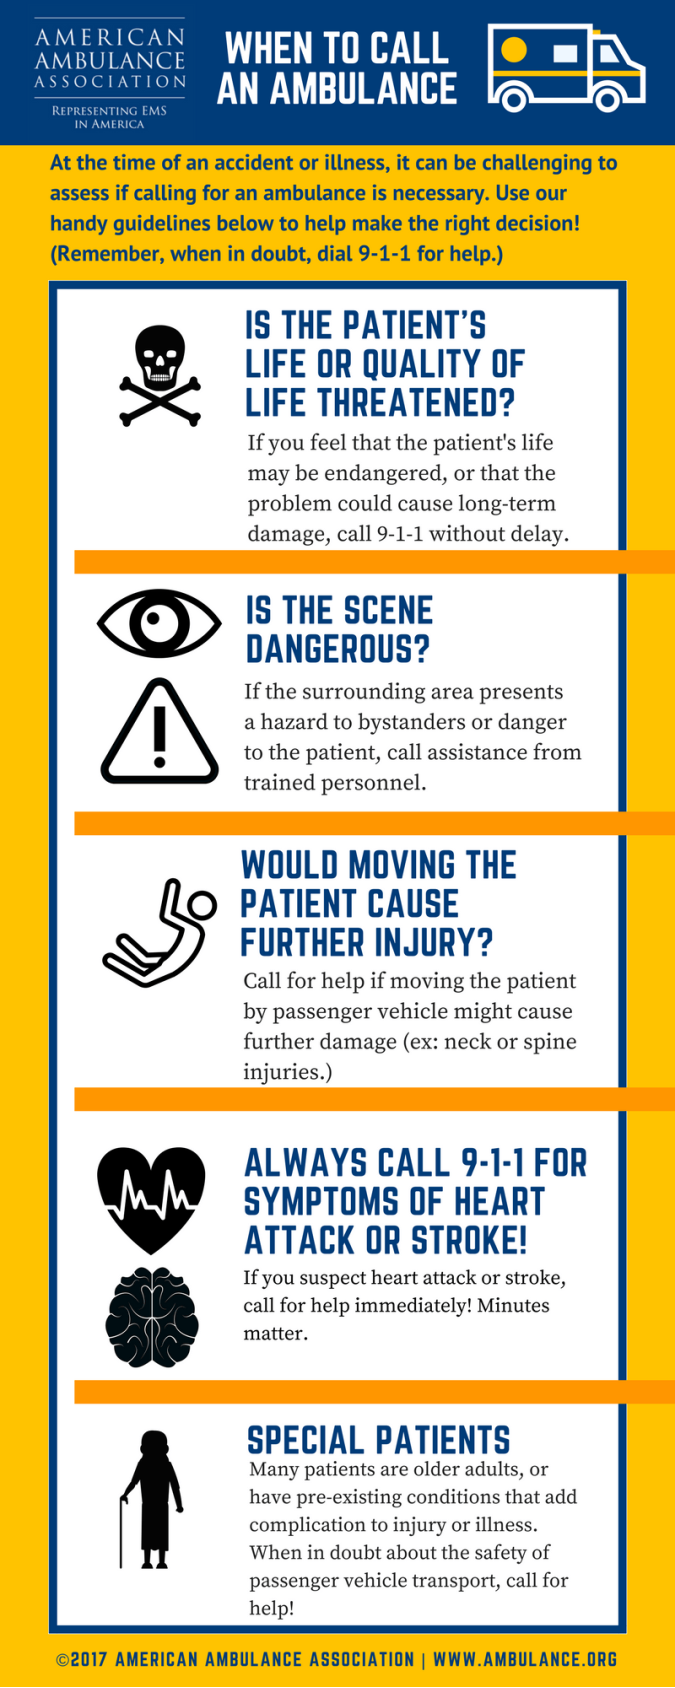 American Ambulance Association When to call an ambulance graphic